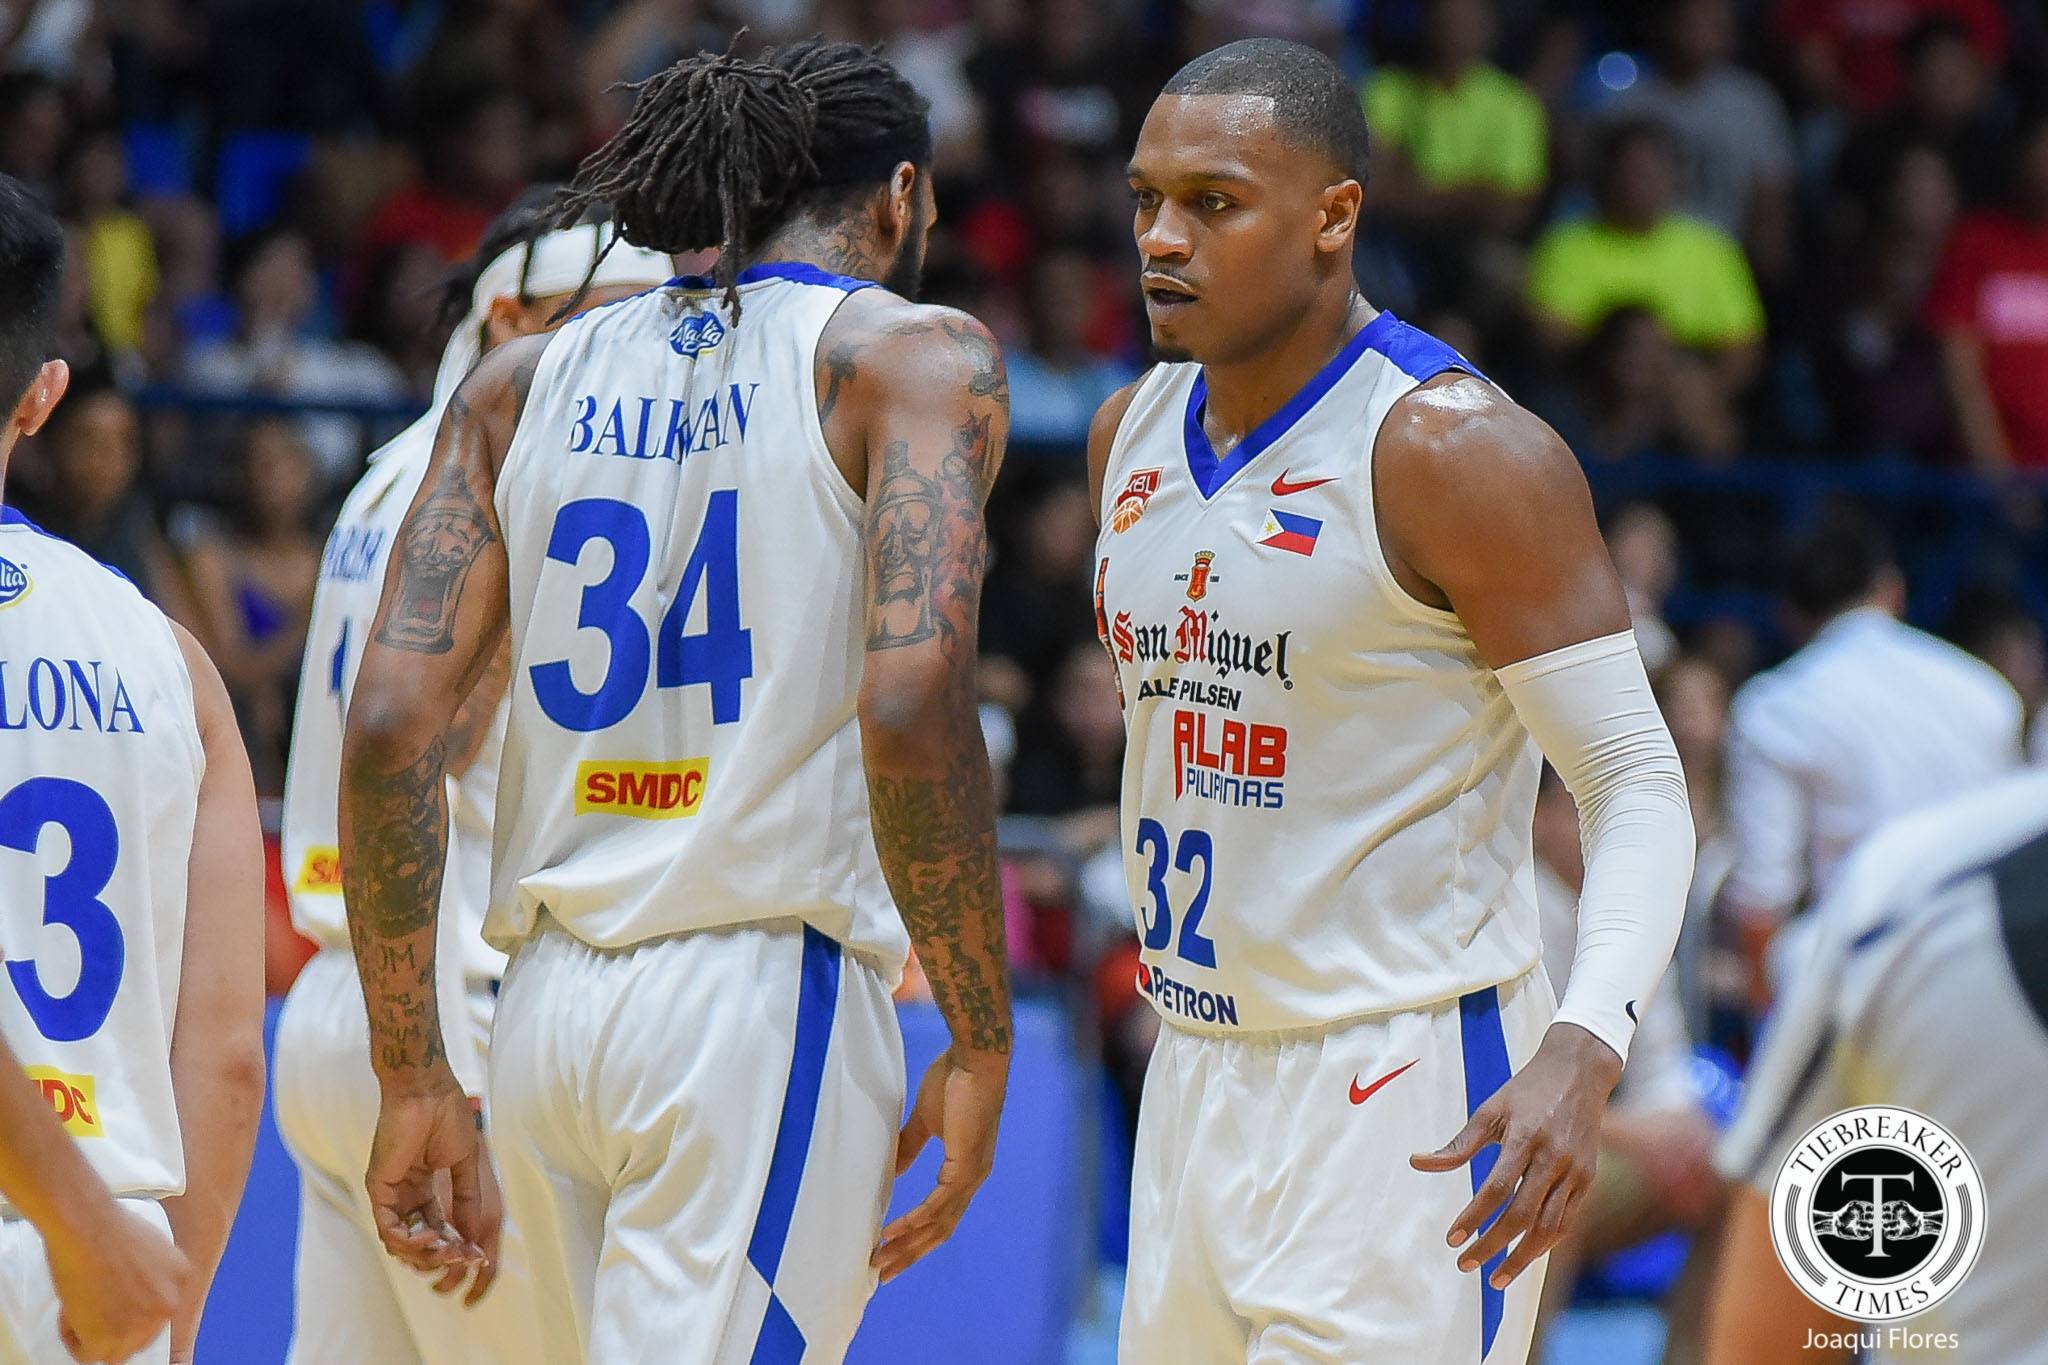 Tiebreaker Times San Miguel Alab reach new heights with B and B duo ABL Alab Pilipinas Basketball News  Renaldo Balkman Justin Brownlee Jimmy Alapag 2017-18 ABL Season